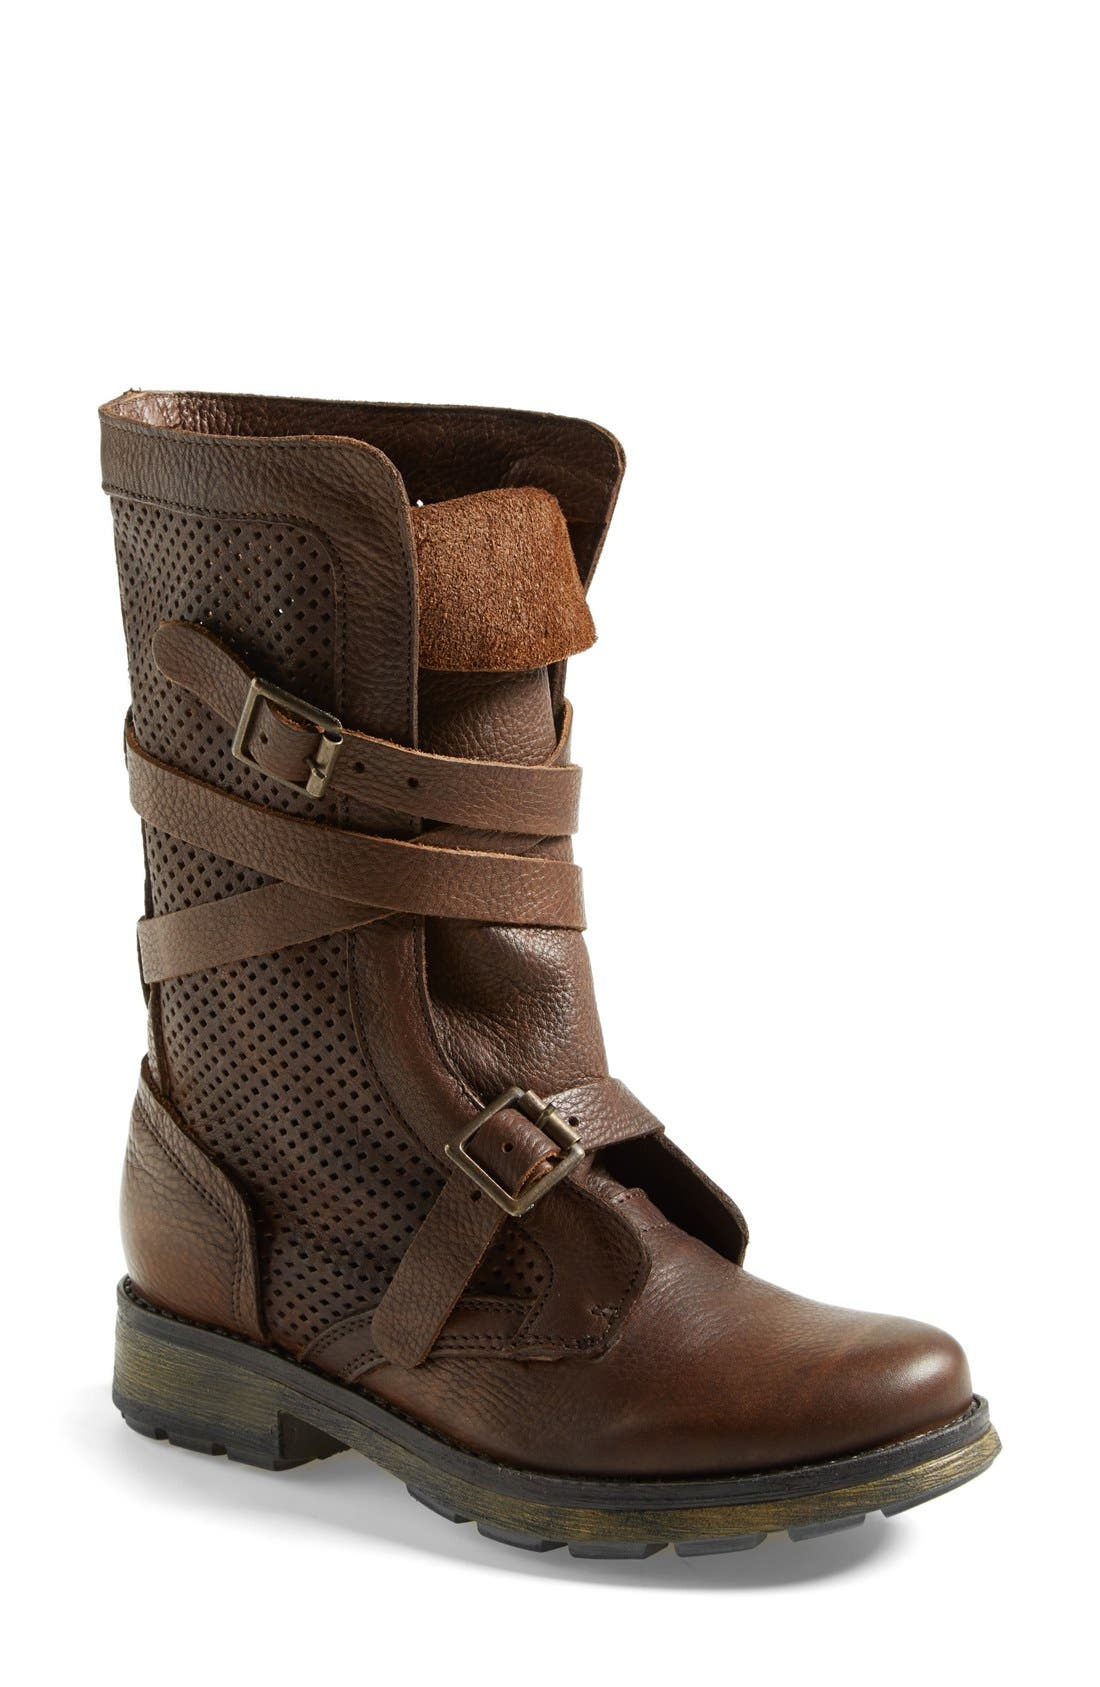 Alternate Image 1 Selected - Steve Madden 'Bosston' Leather Boot (Women)